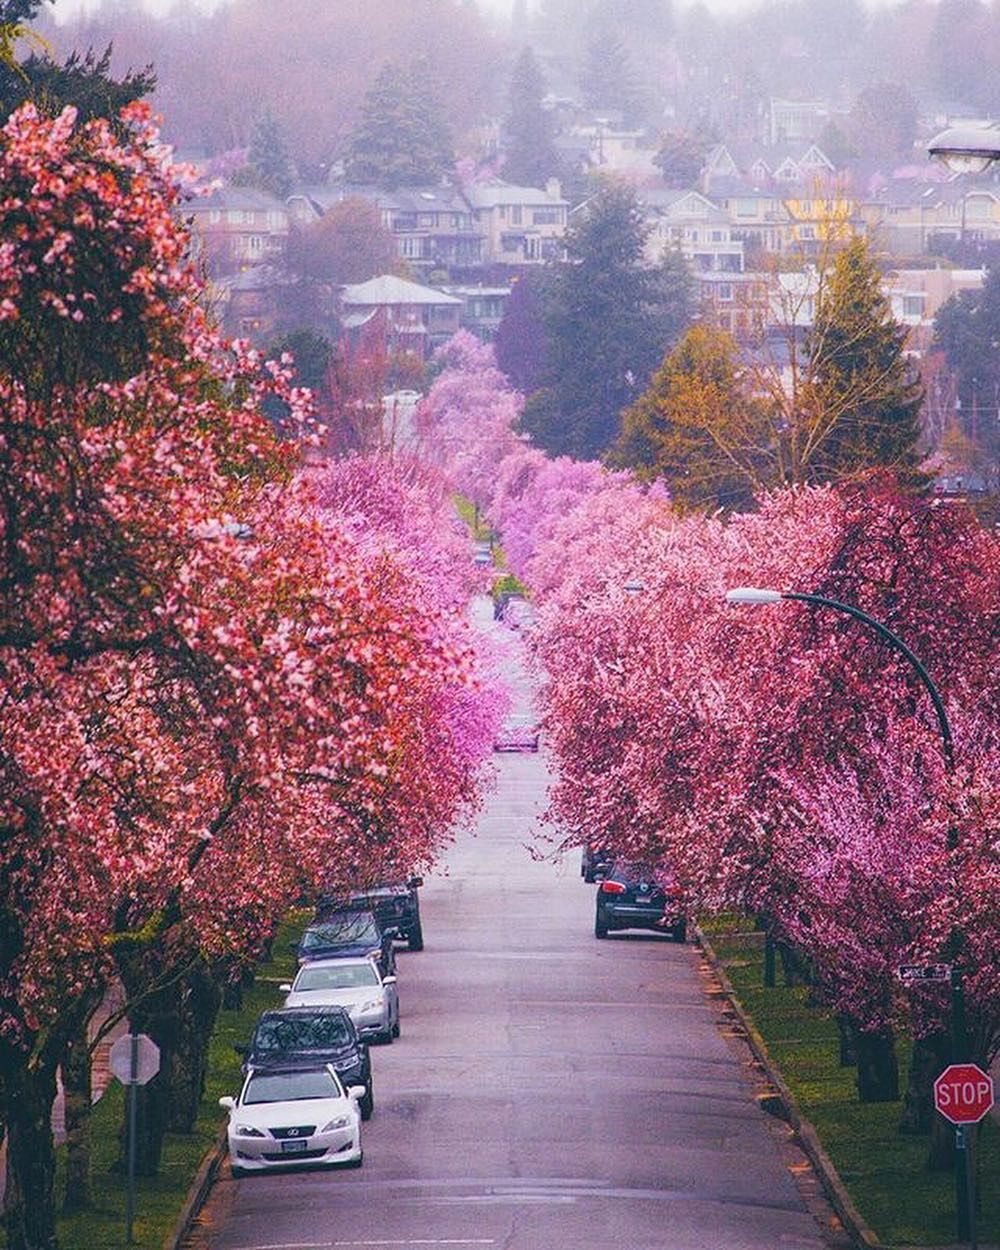 Wander Vancouver On Instagram Cherry Blossom Heaven Comment Your Favourite 1 10 Photos By 1 Staysinspired Vancouver Photo Instagram